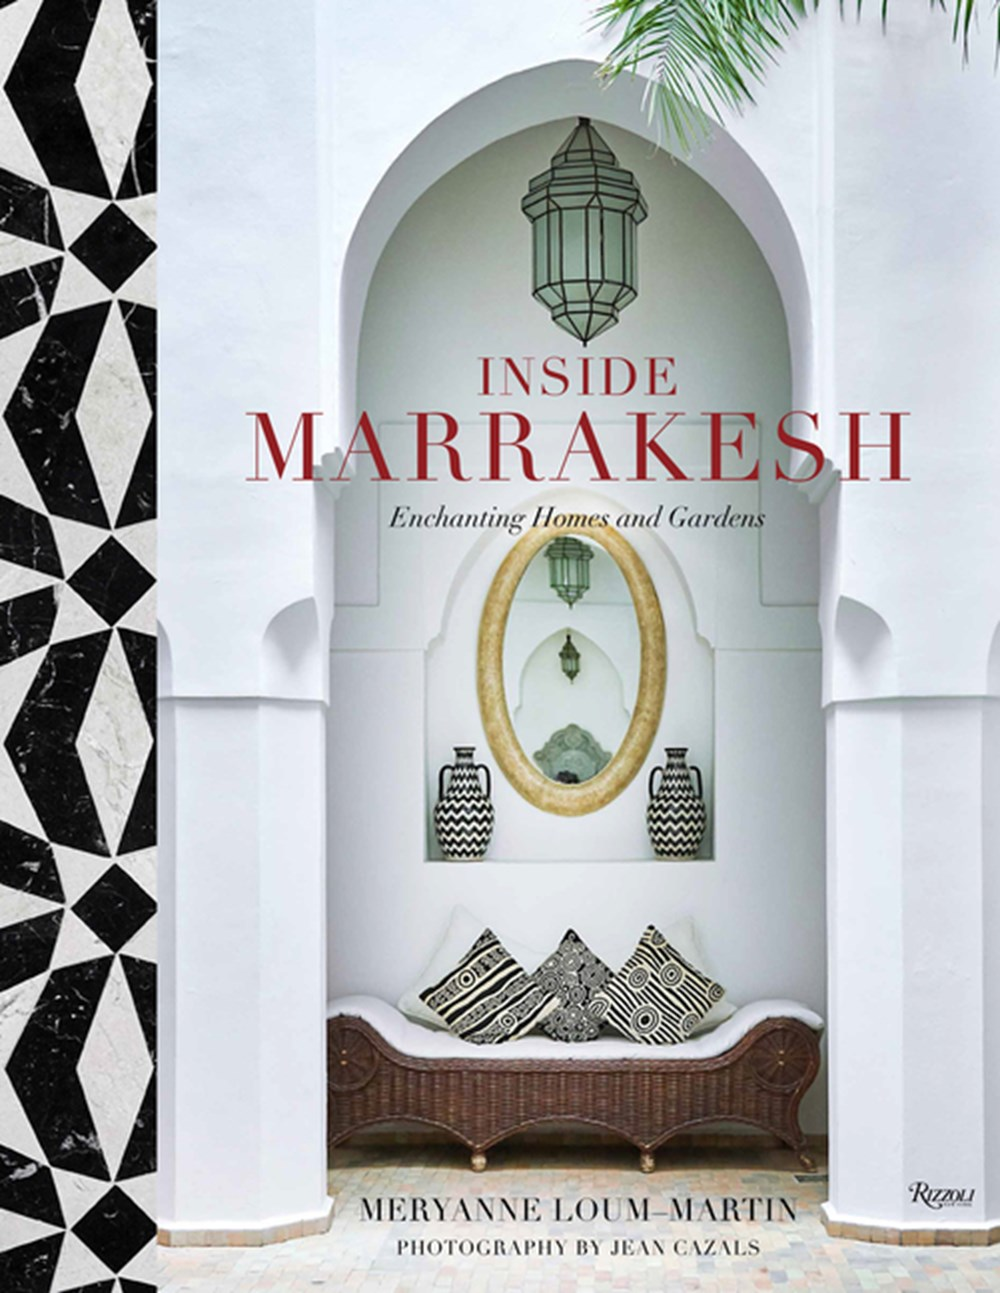 Inside Marrakesh Enchanting Homes and Gardens